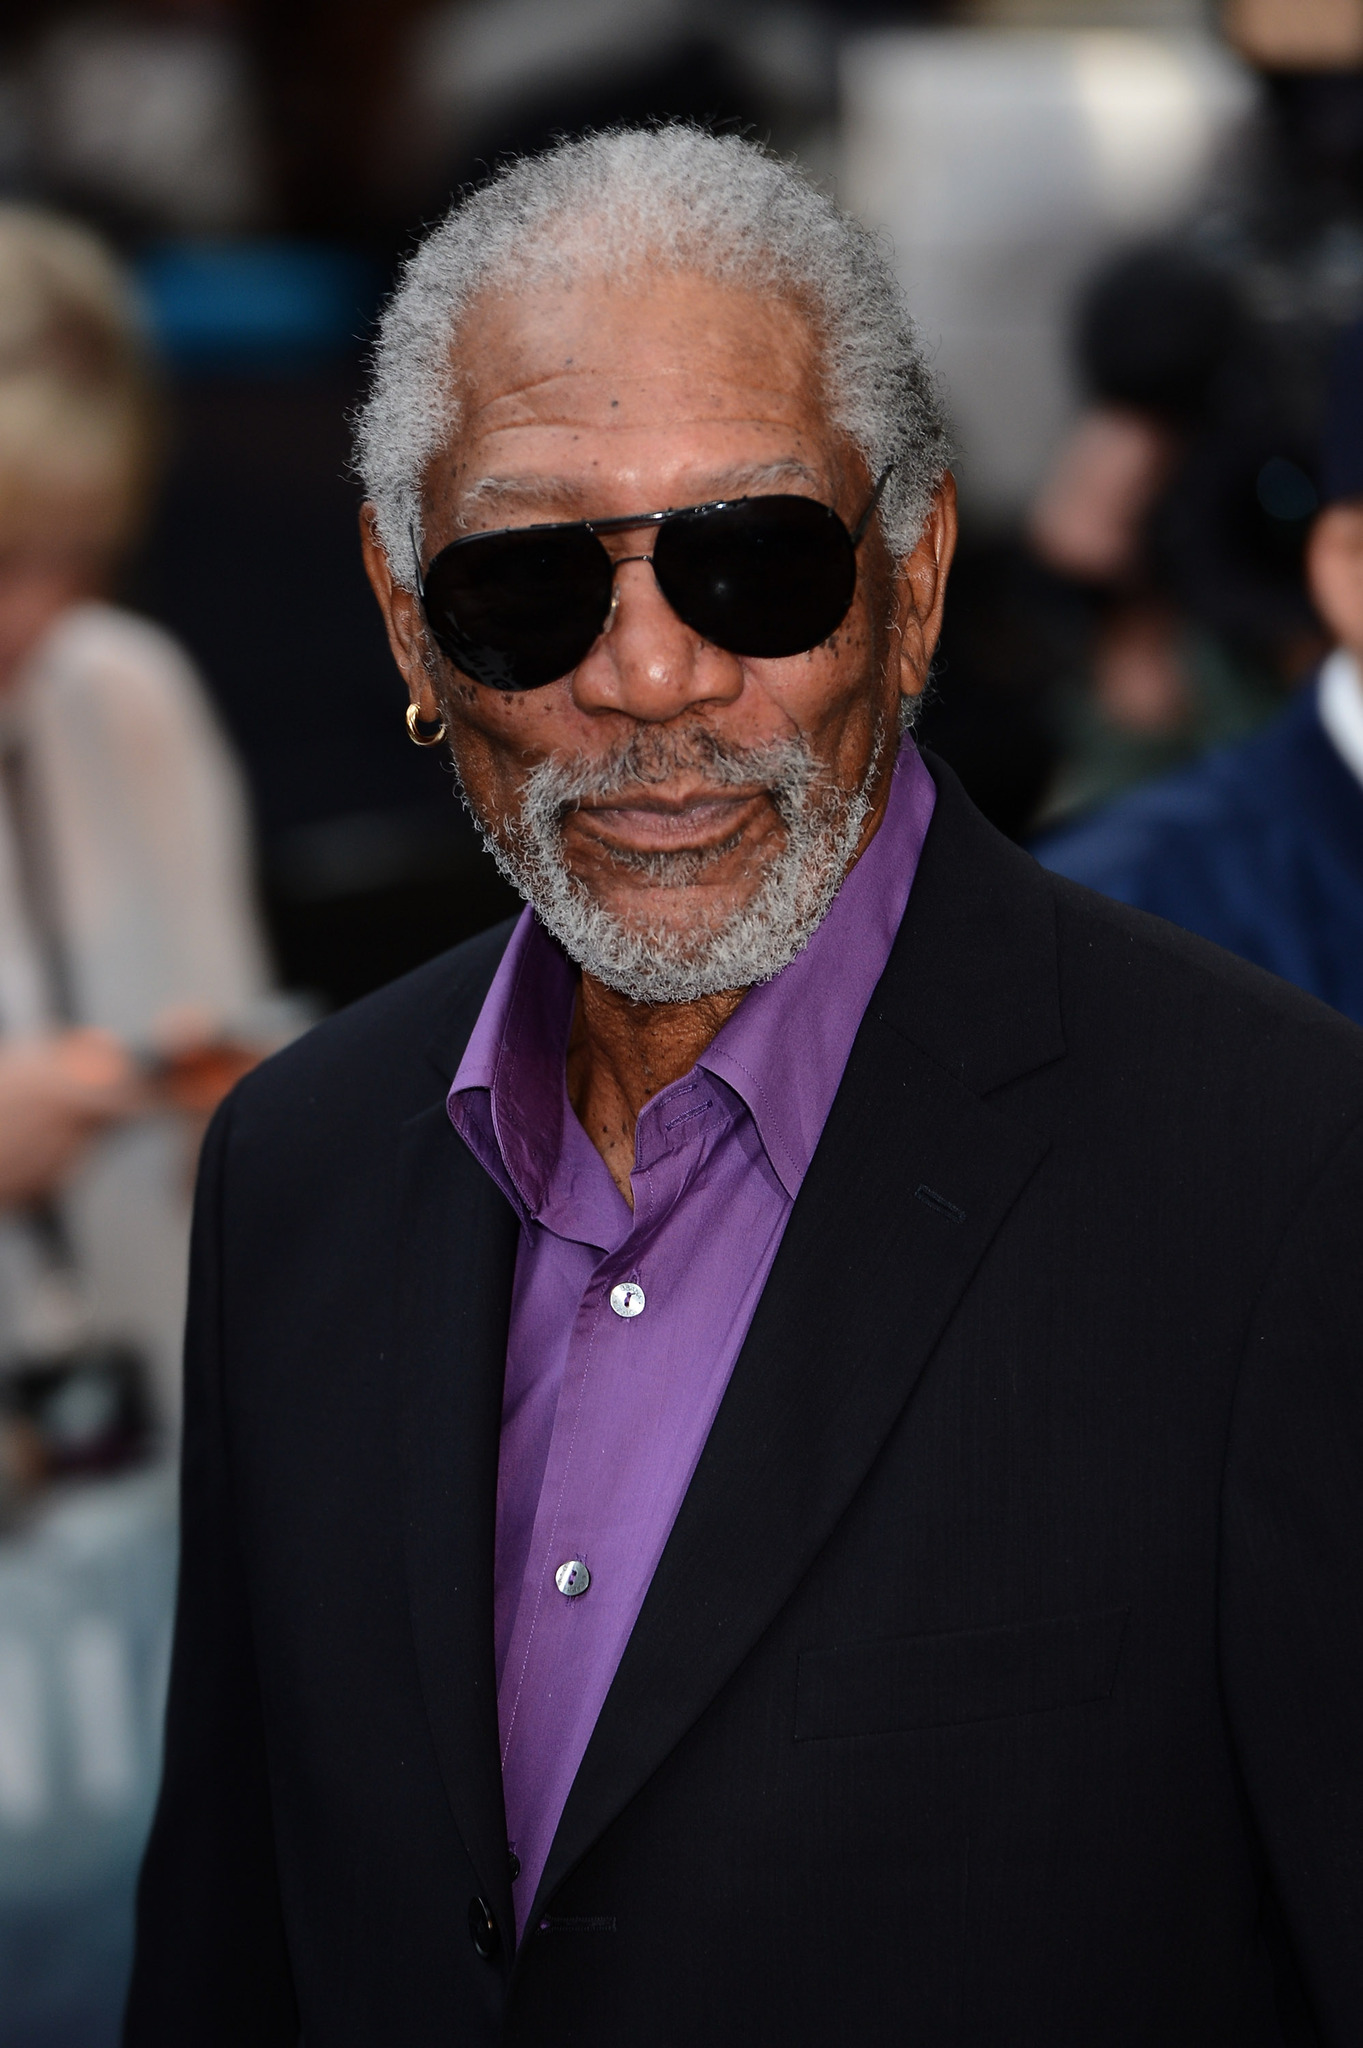 Morgan Freeman at an event for The Dark Knight Rises (2012)